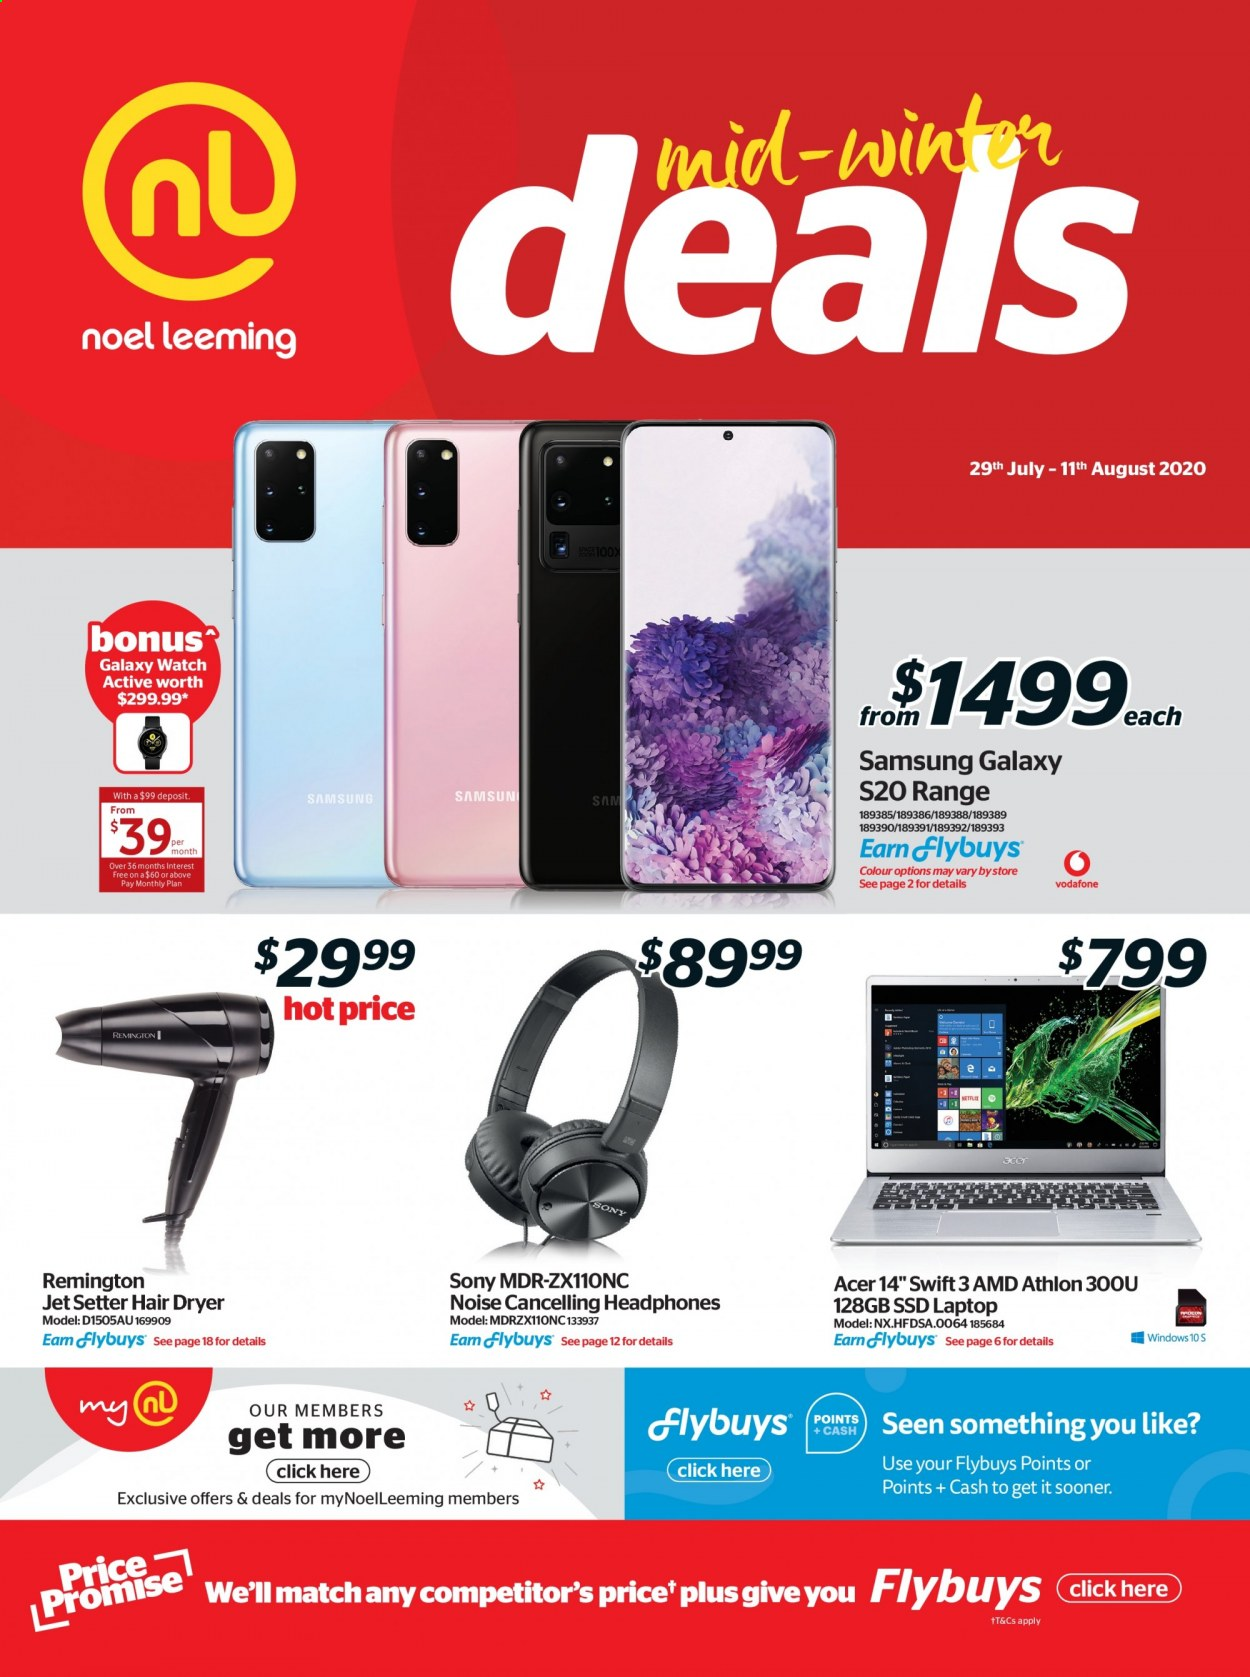 Noel Leeming mailer - 29.07.2020 - 11.08.2020 - Sales products - acer, amd, dryer, galaxy, laptop, remington, samsung, sony, watch, hair dryer, ssd, athlon, headphones, galaxy s, samsung galaxy. Page 1.